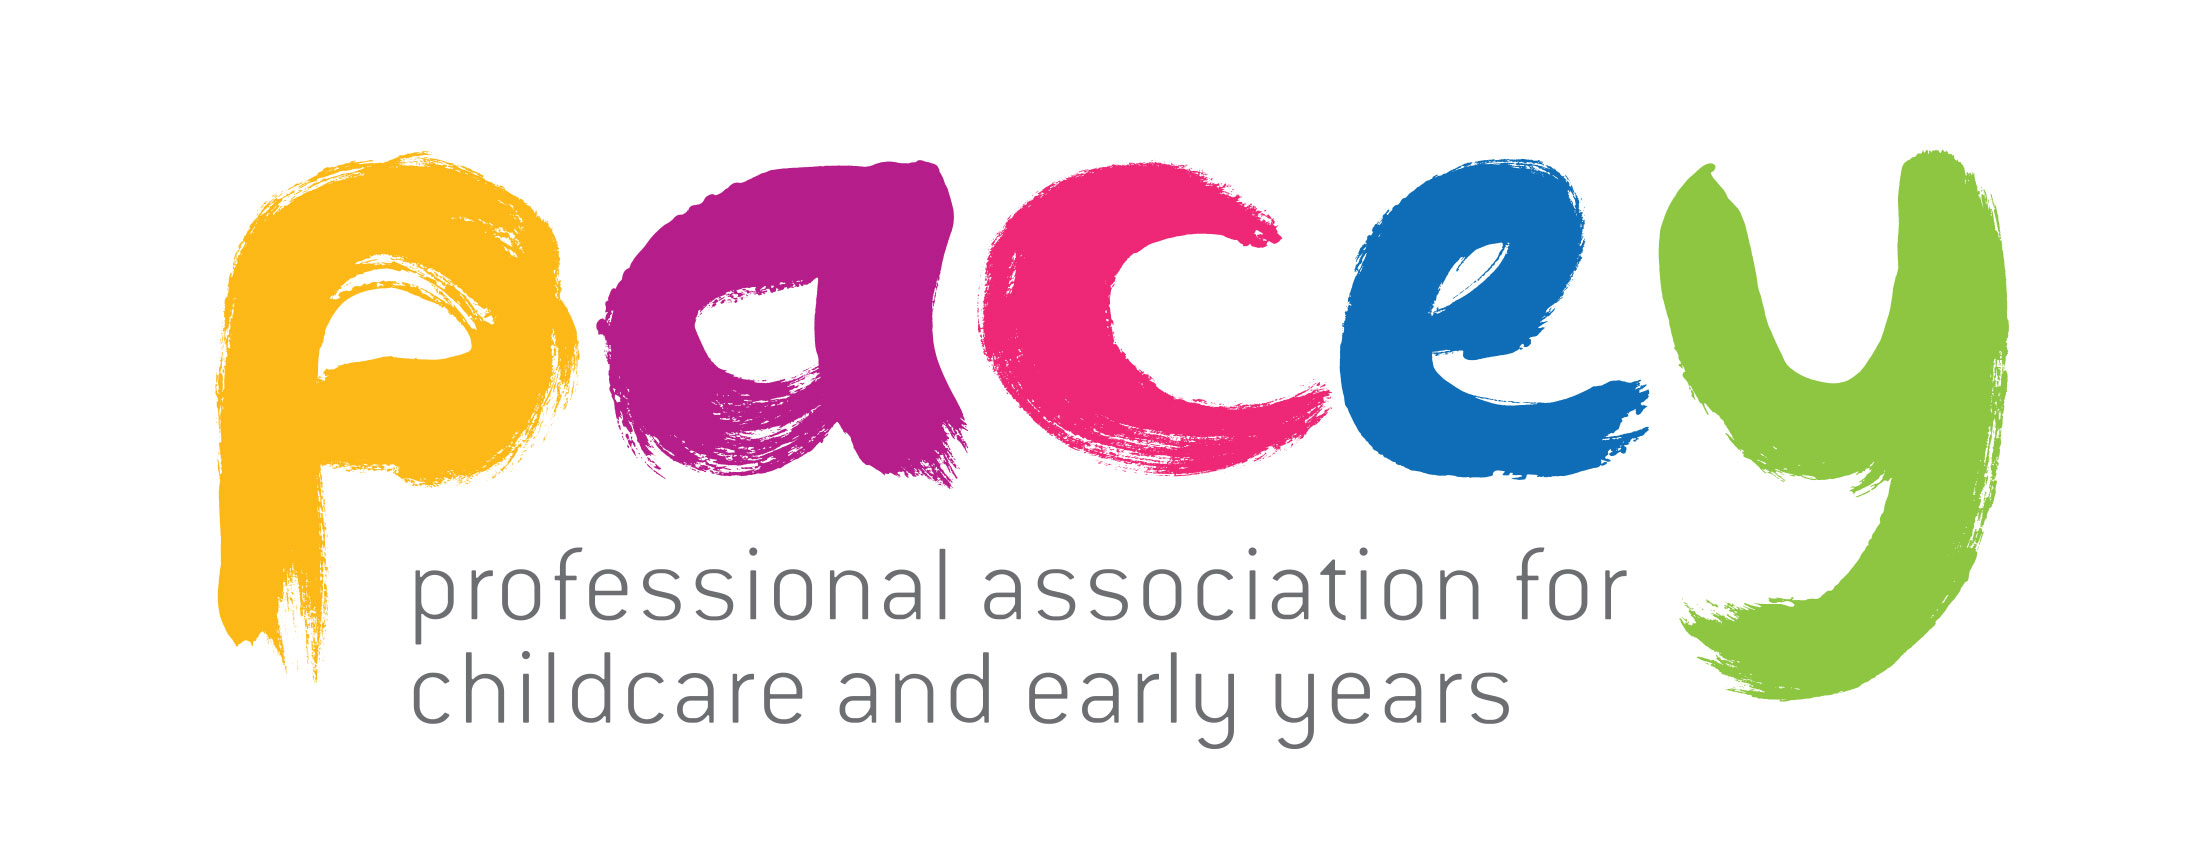 Professional Association for Childcare and Early Years.JPG